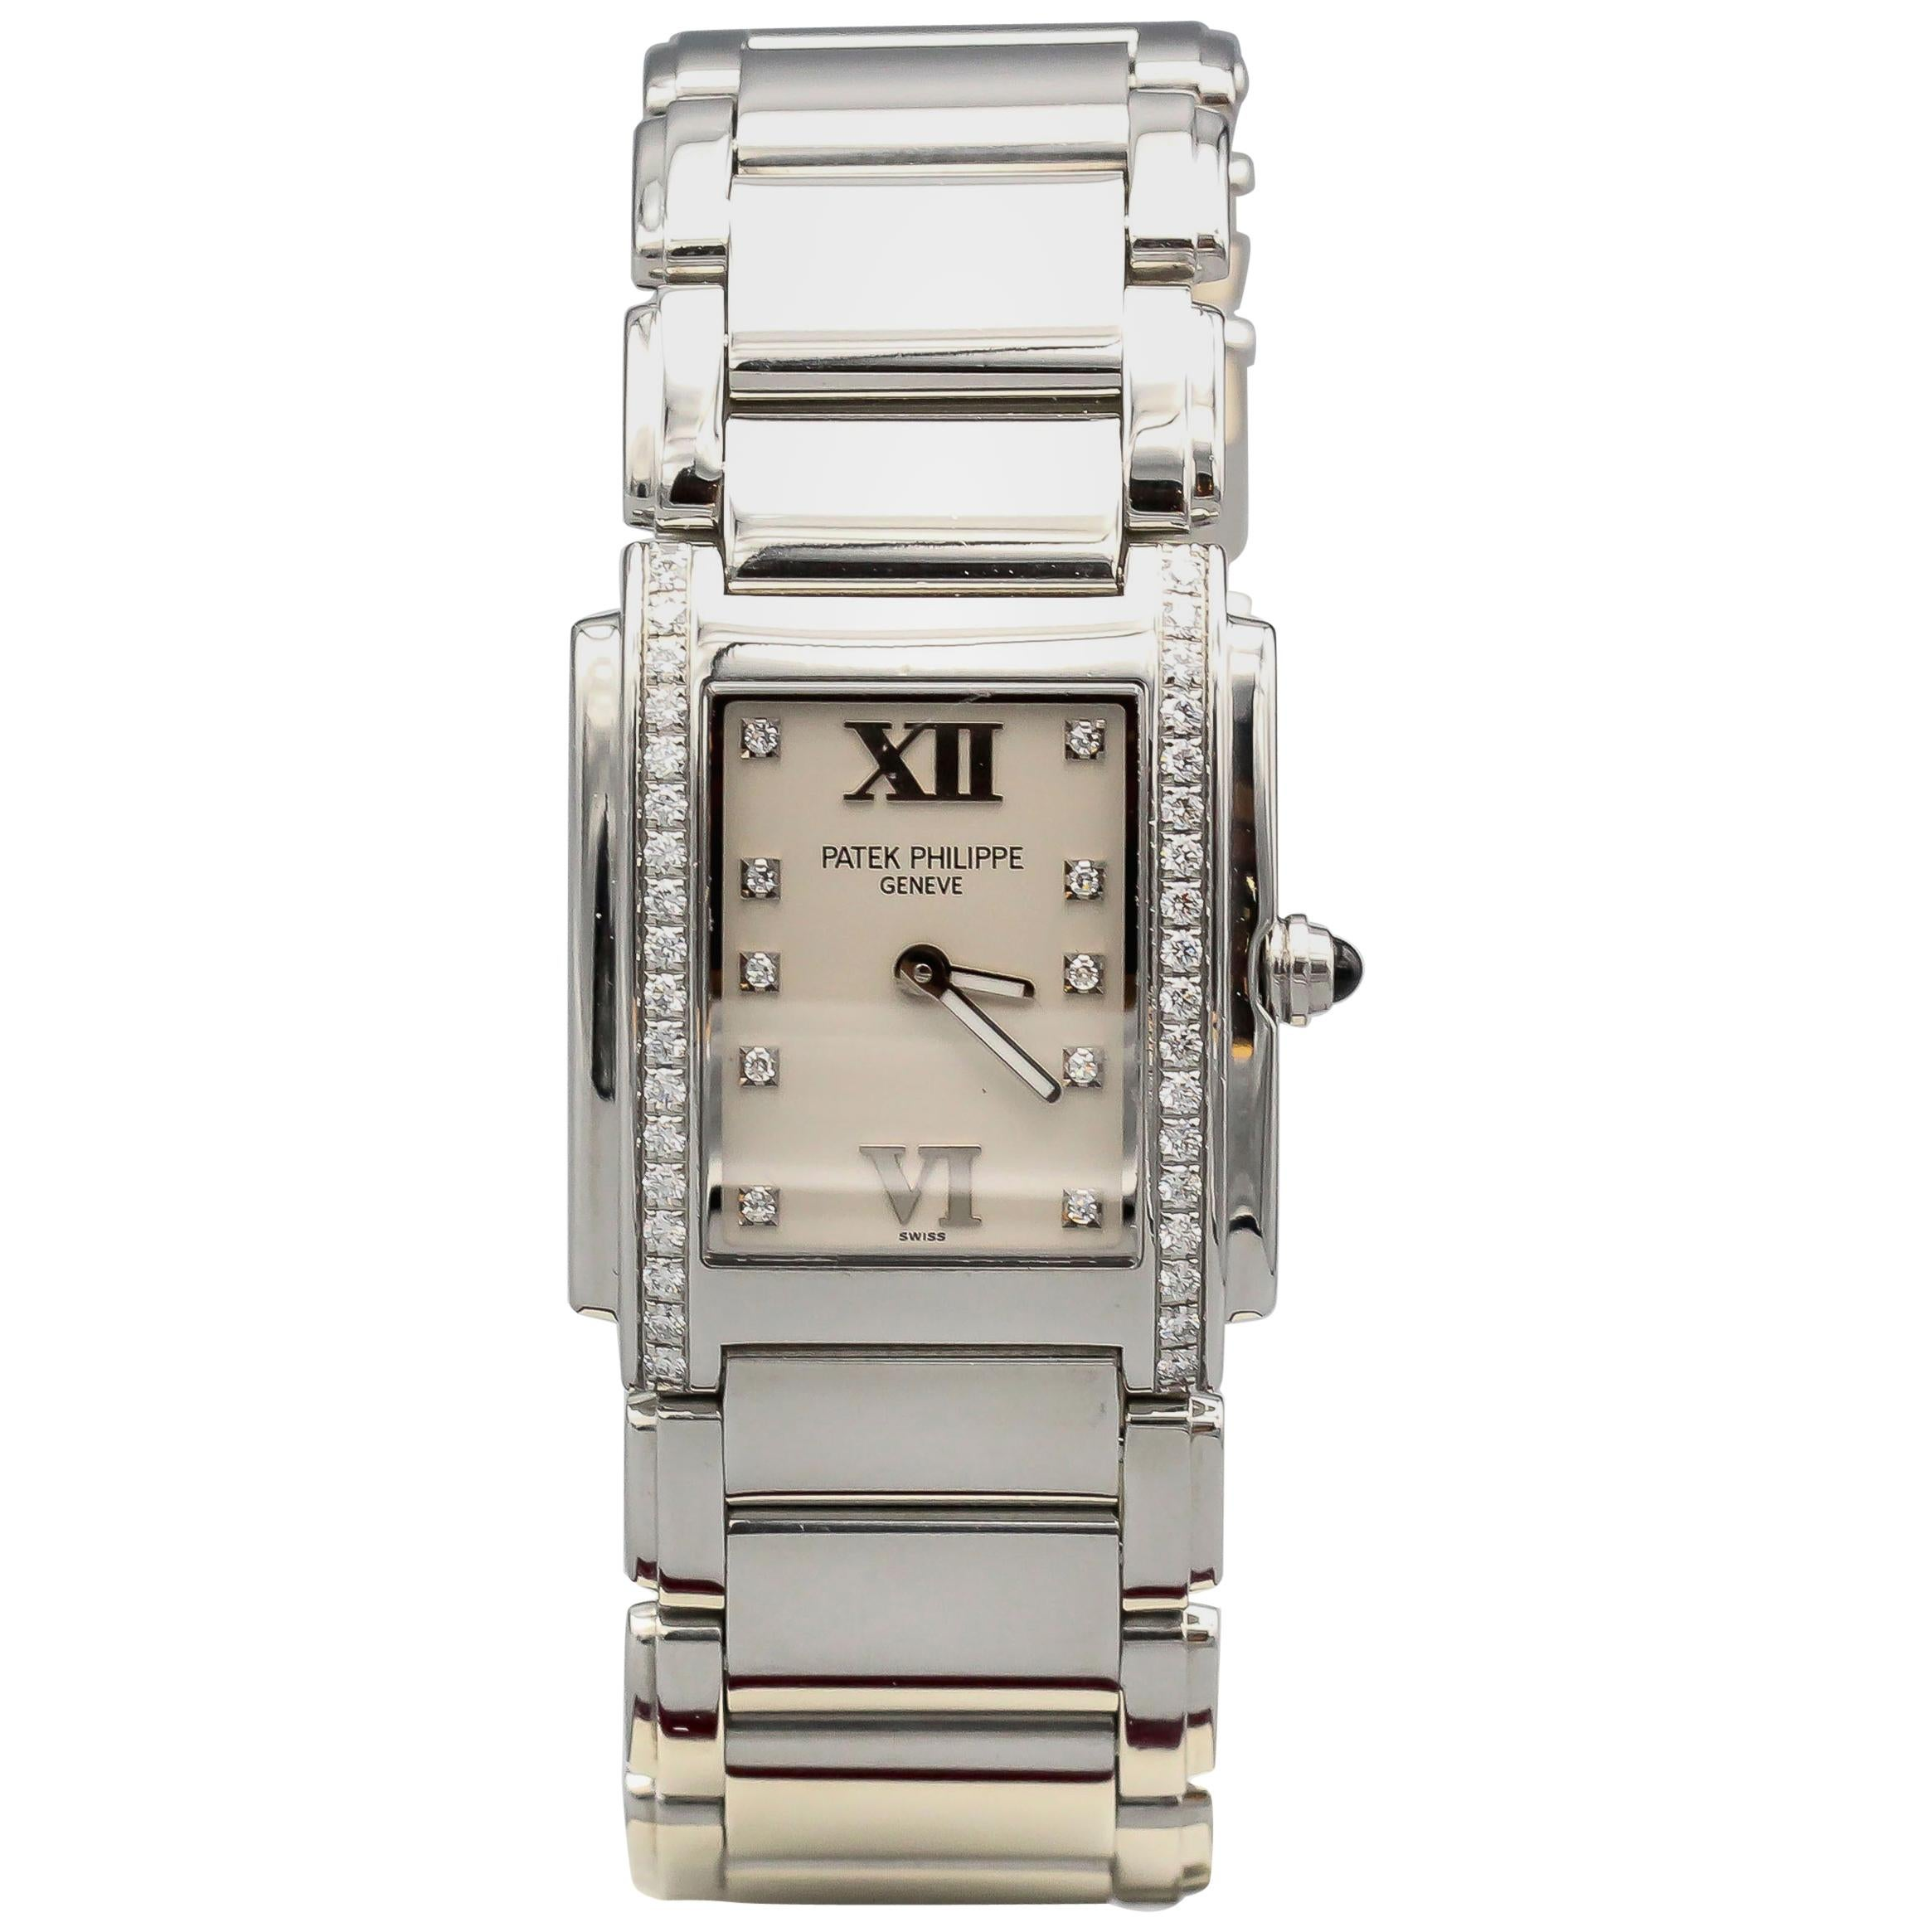 Patek Philippe Ladies Twenty-4 Watch Stainless Steel White Dial Ref. 4910